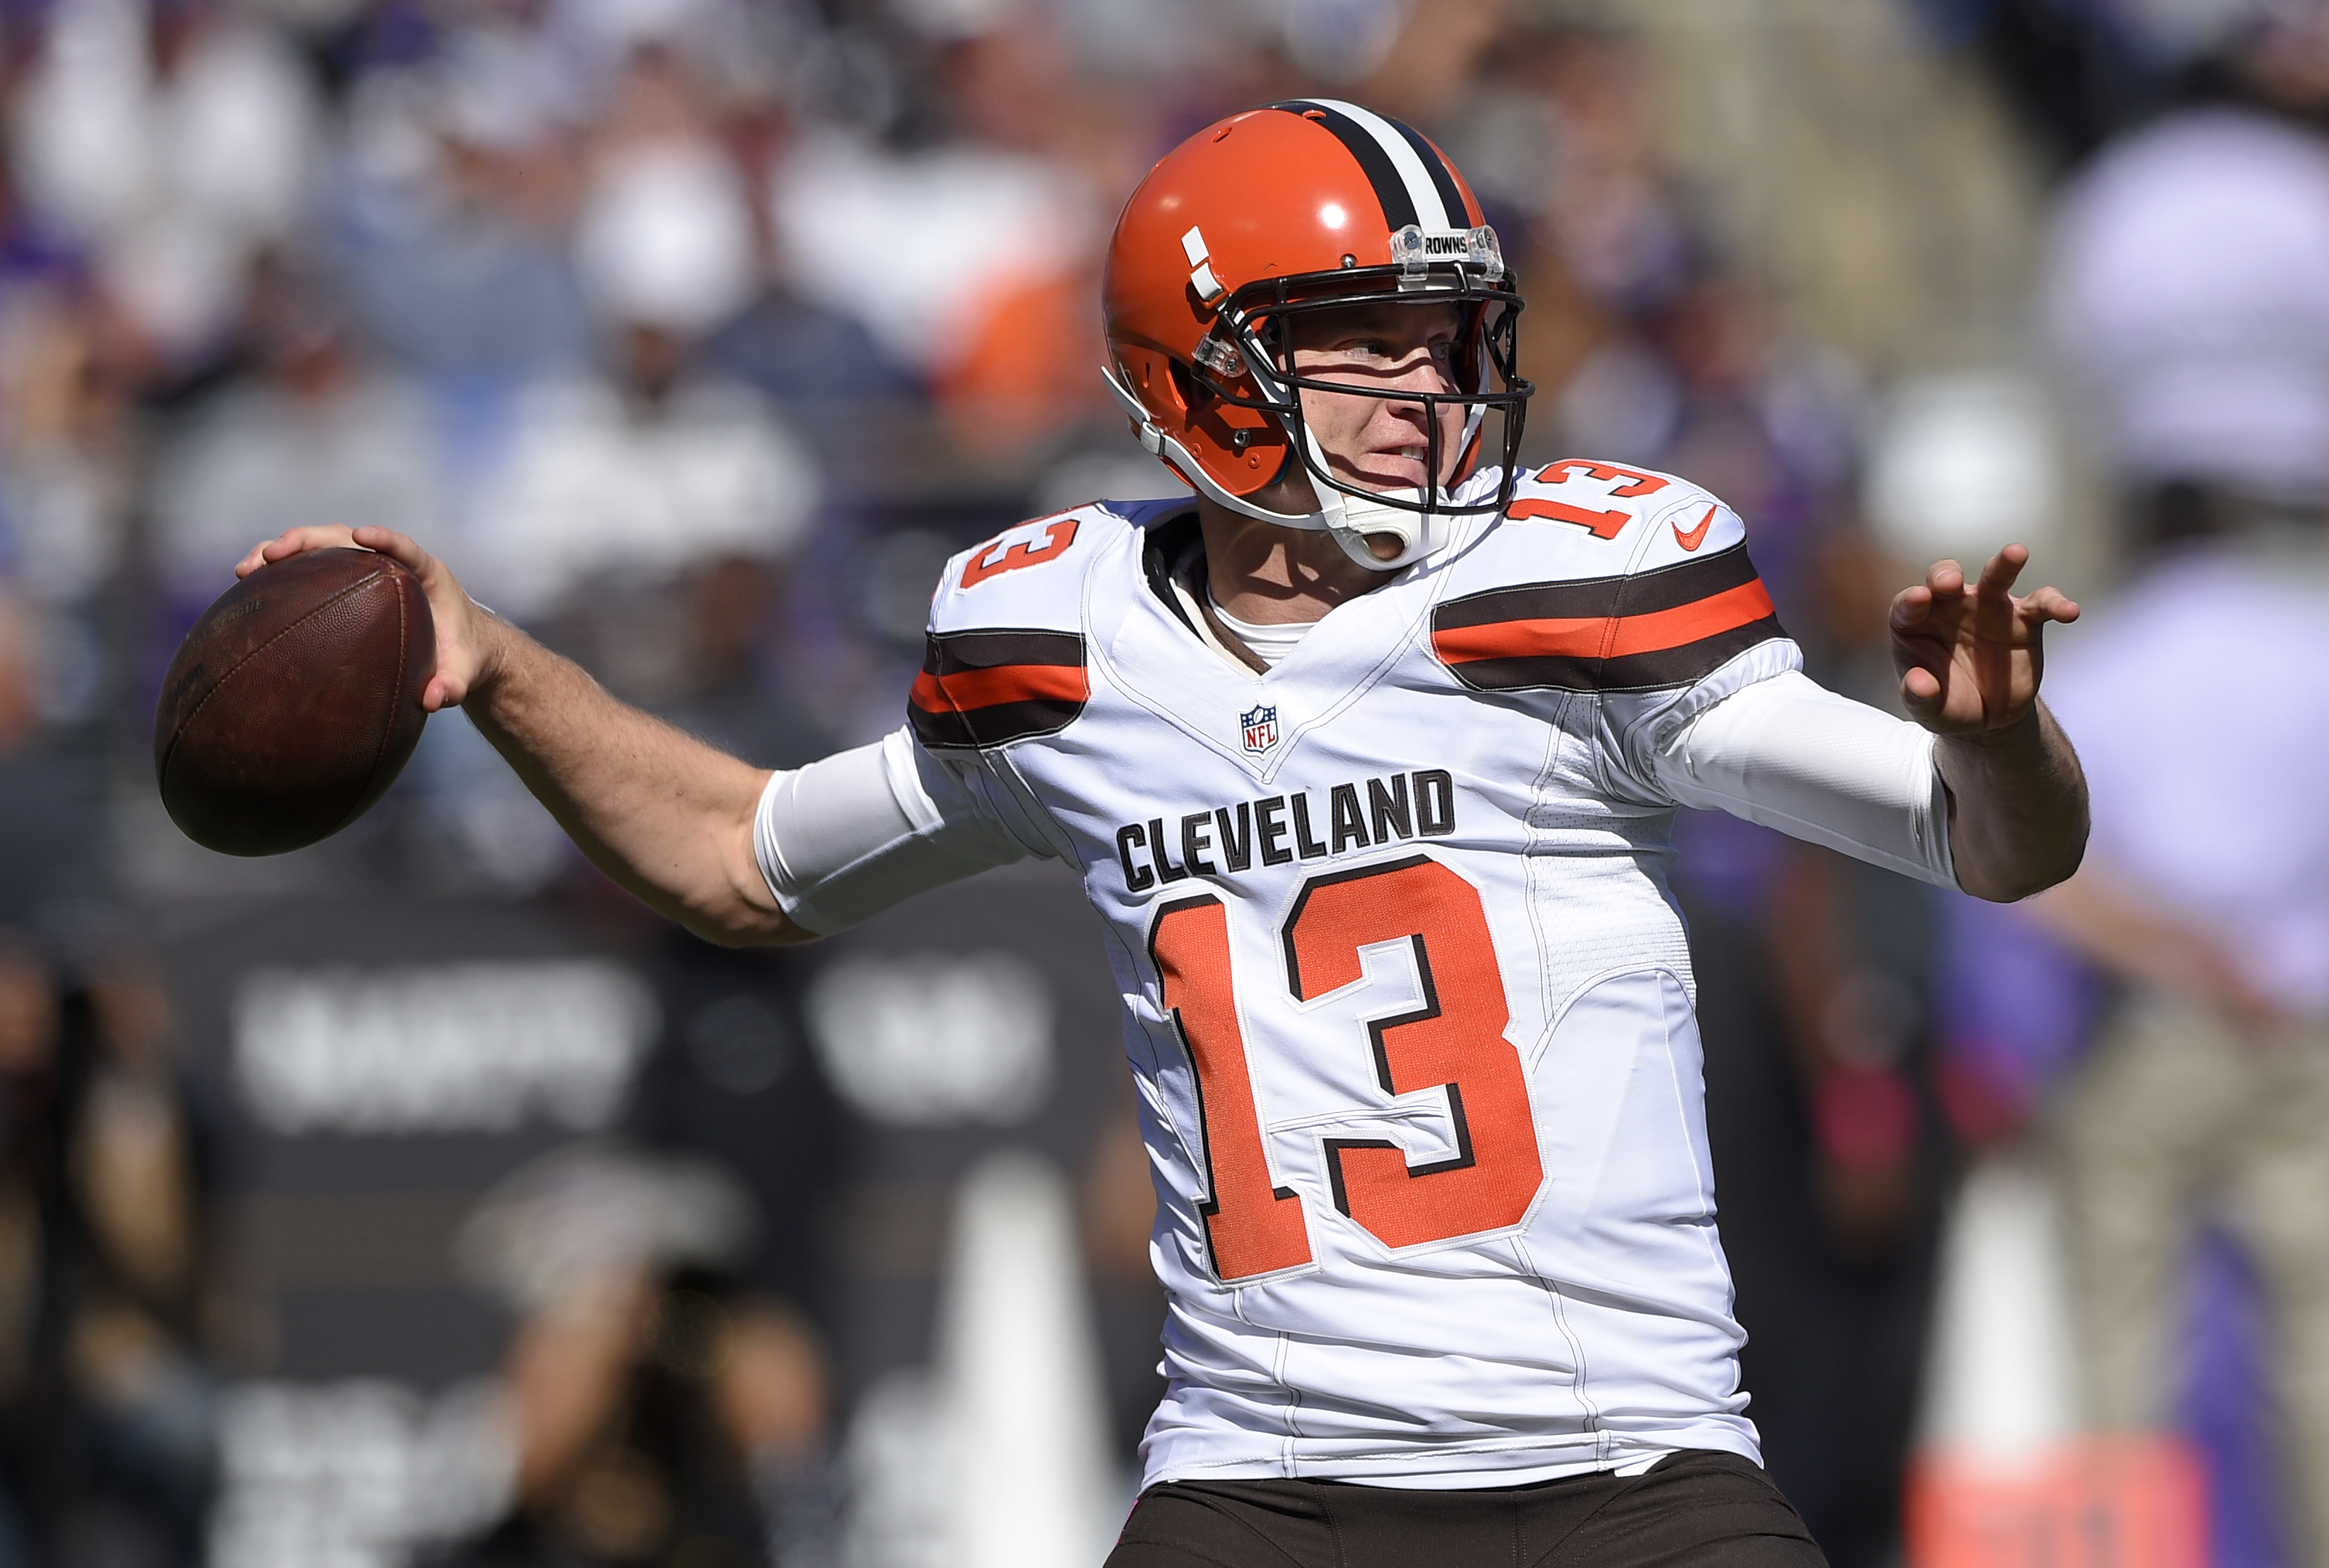 Cleveland Browns quarterback Josh McCown throws to a receiver in the first half of an NFL football game against the Baltimore Ravens, Sunday, Oct. 11, 2015, in Baltimore. (AP Photo/Nick Wass)